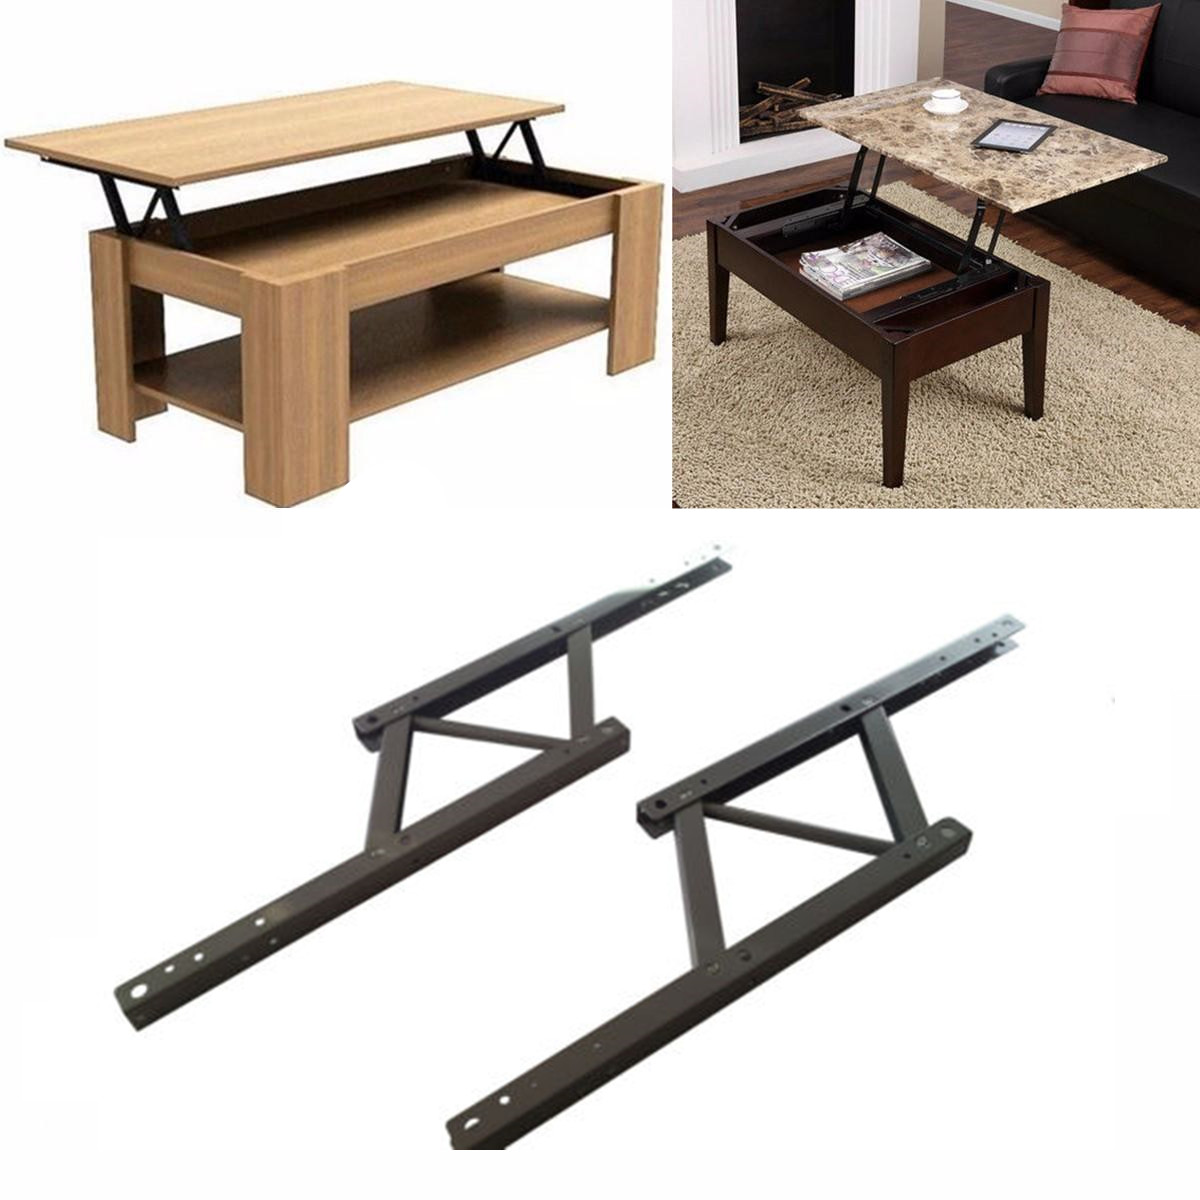 Iron Lift Top Coffee Table Mechanism Diy Hardware Lift Up